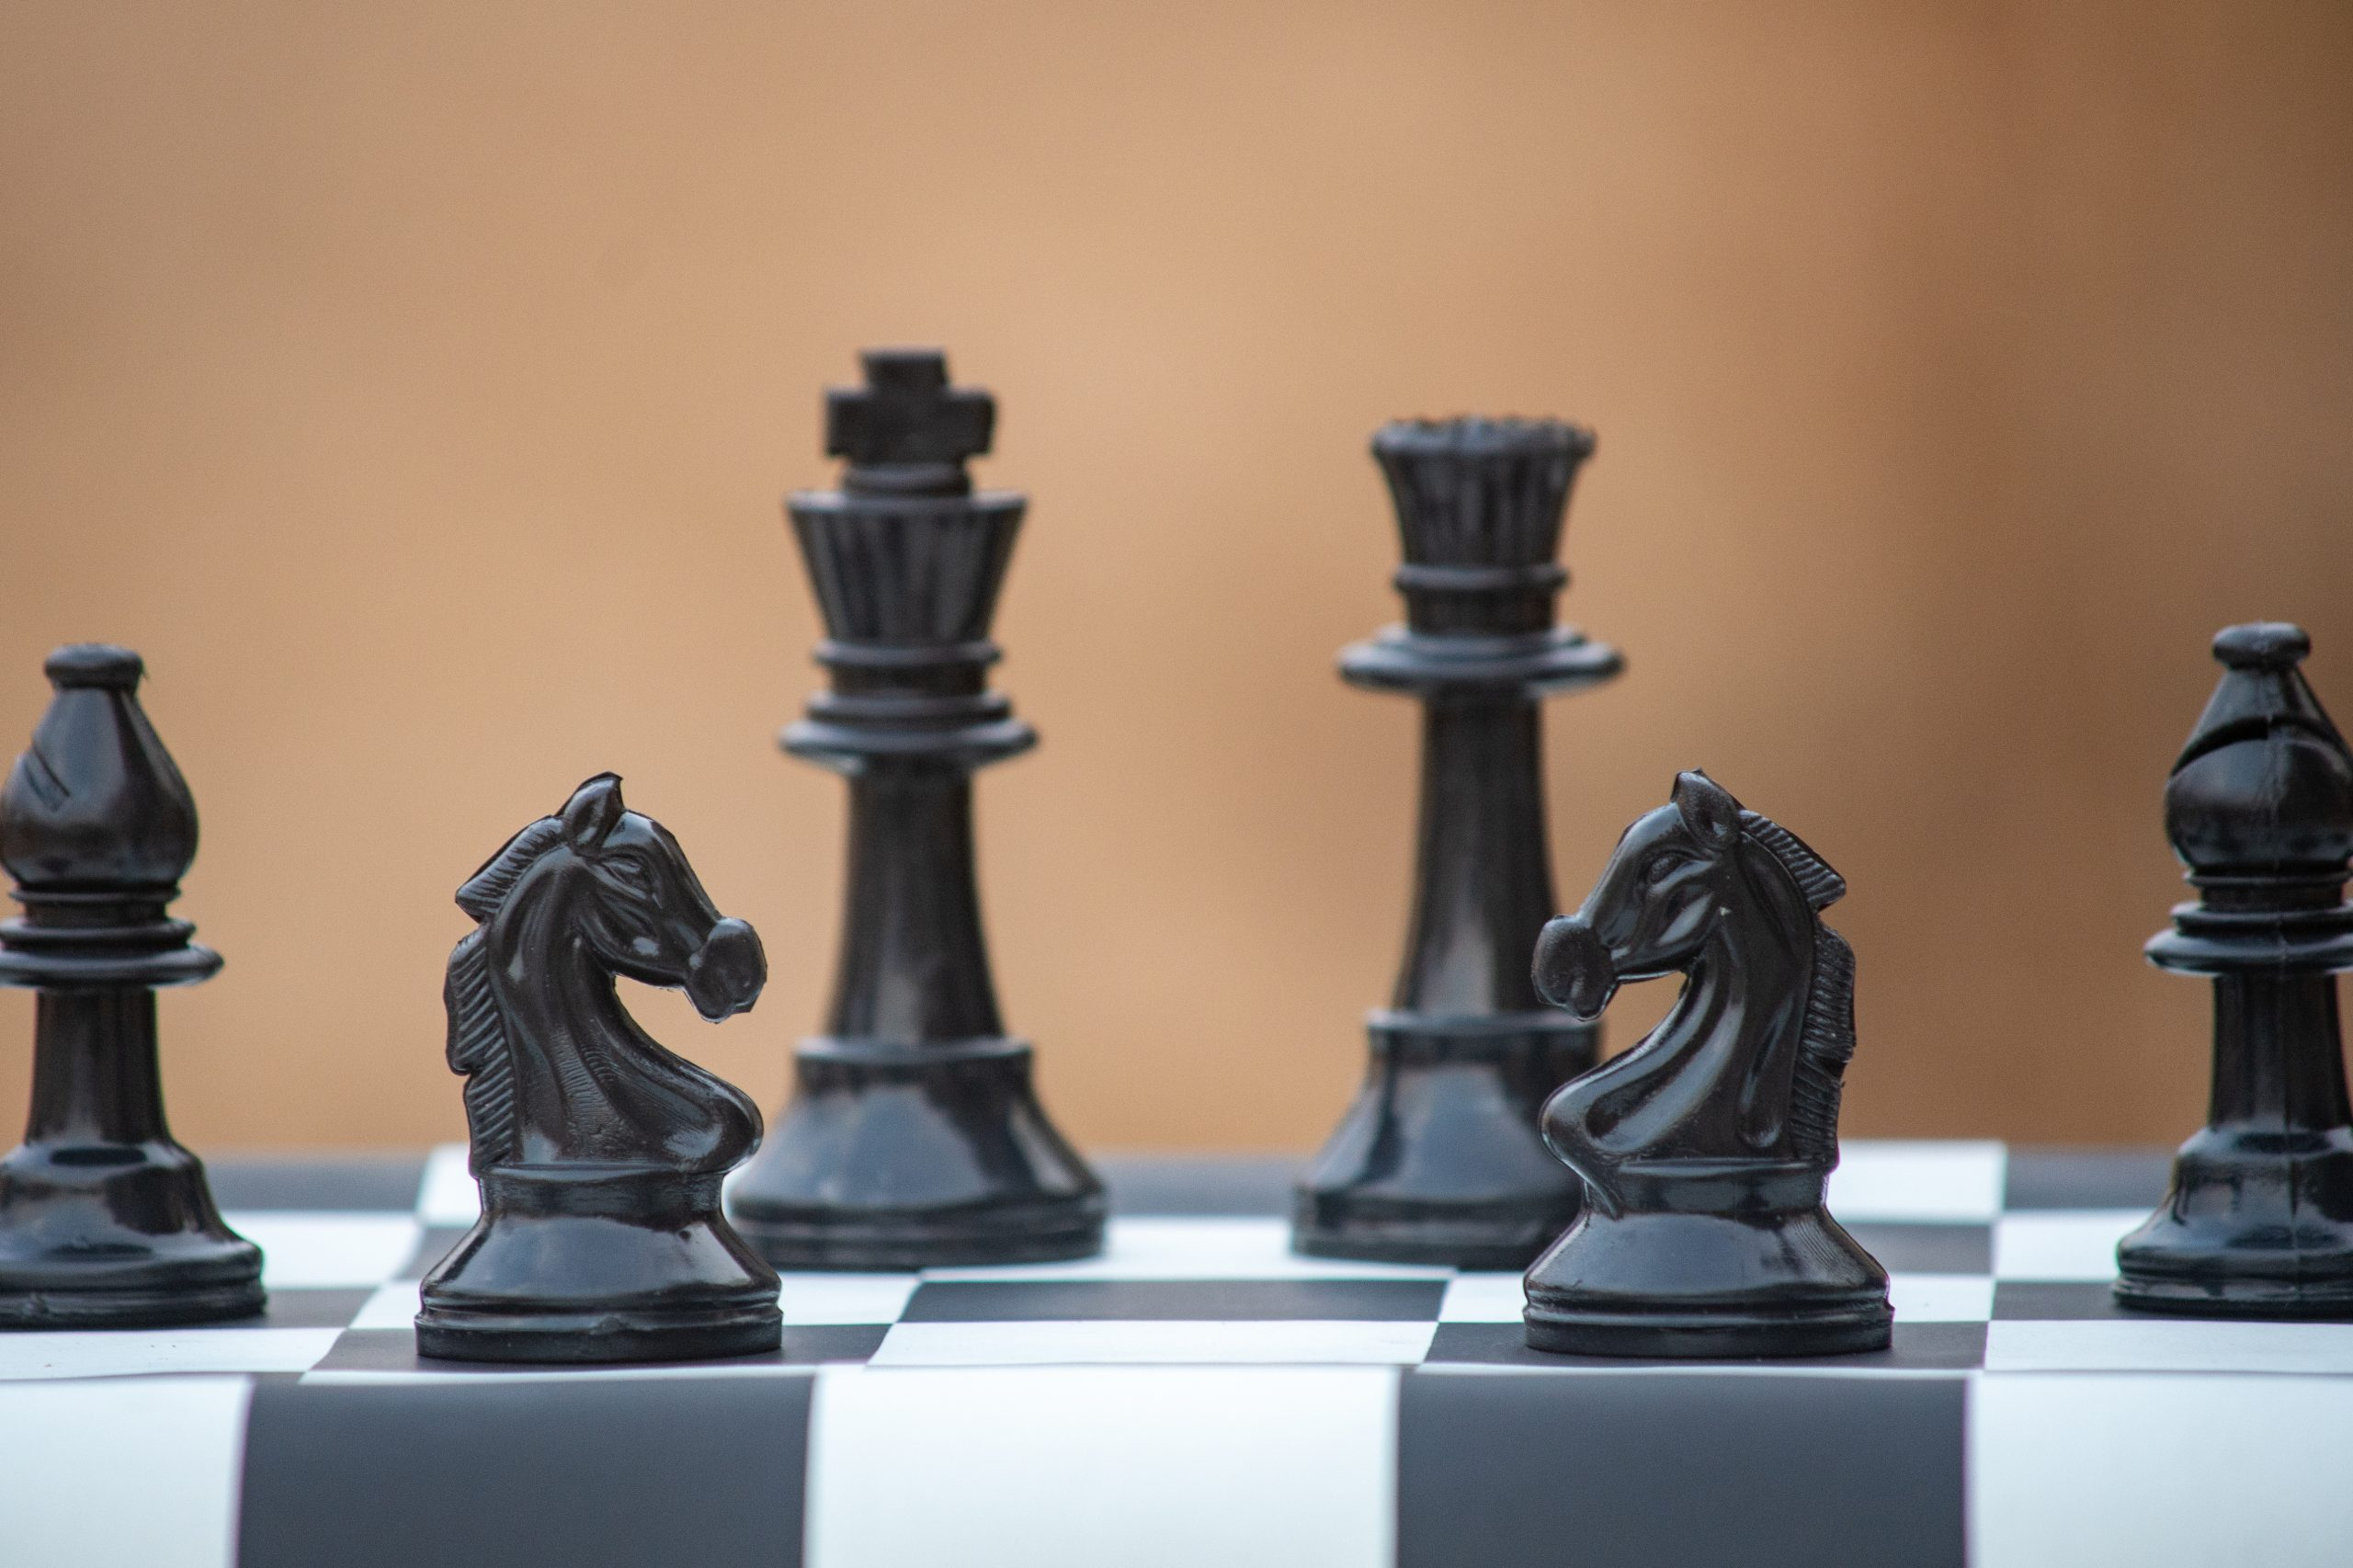 Black knights of chess pieces